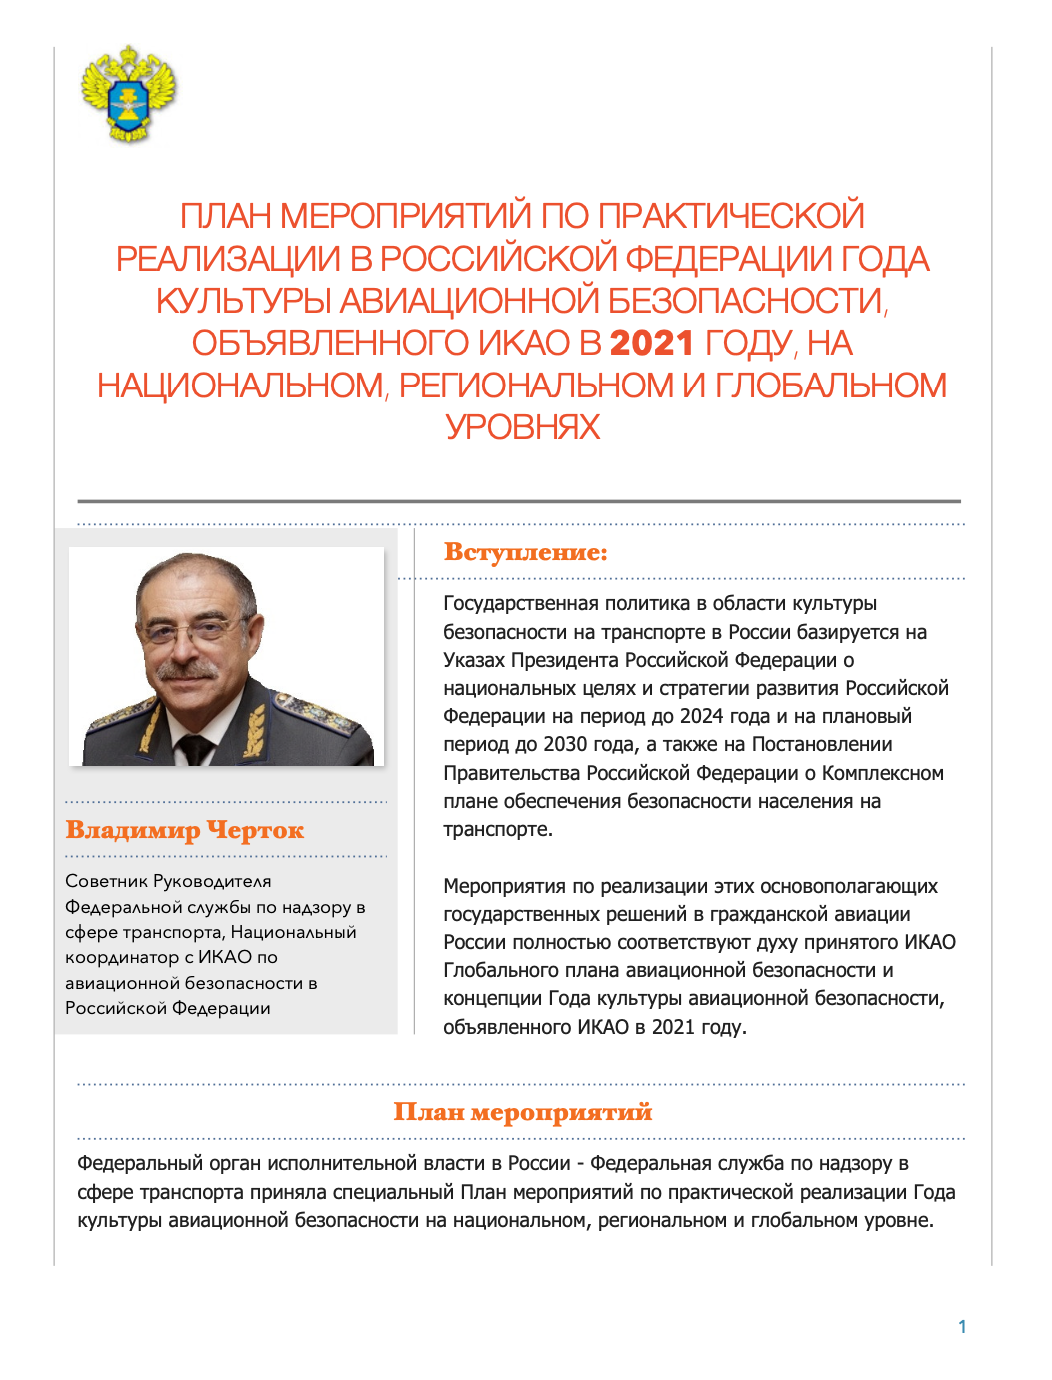 Russian Federation - the article by Mr. Chertok.png